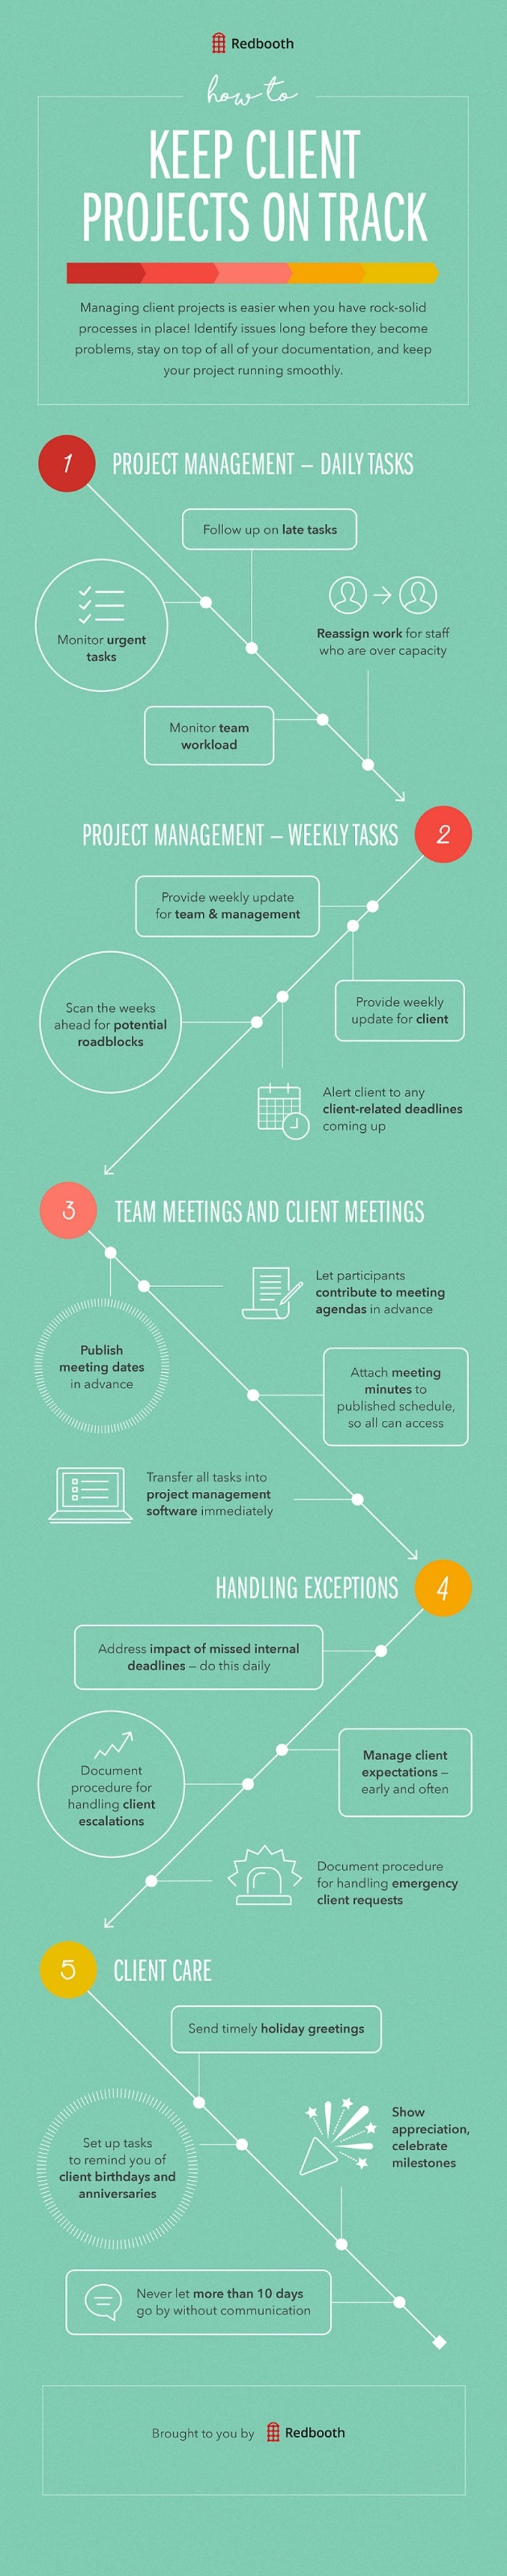 How to Keep Client Projects on Track [Infographic] - Profs | The Marketing Technology Alert | Scoop.it